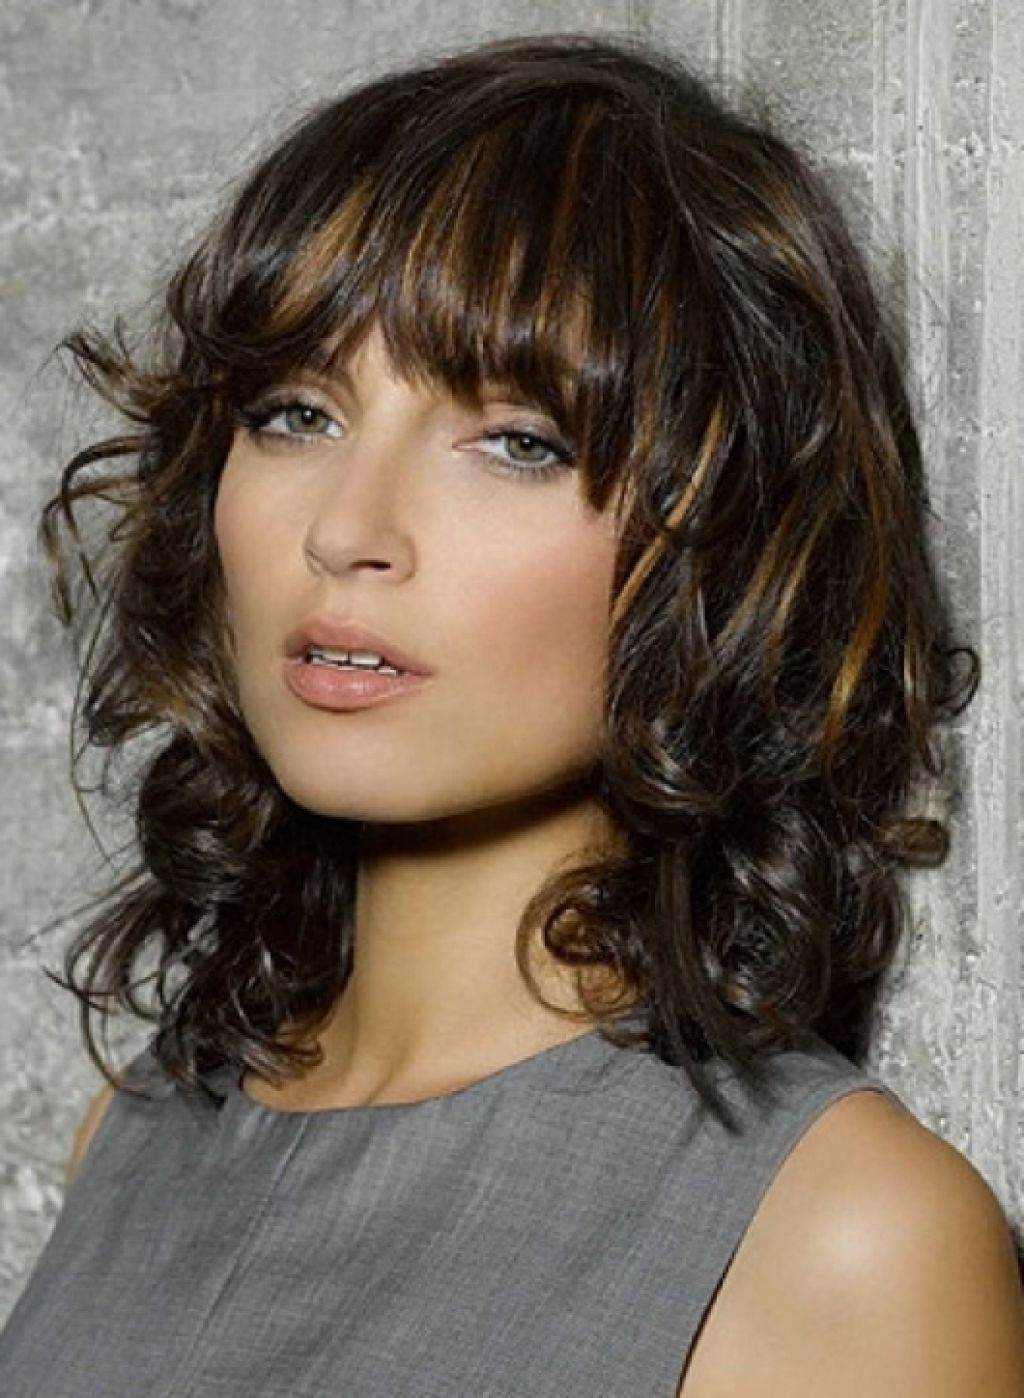 New Hairstyles For Medium Length Thick Hair 95 Ideas With 40+ Adorable Medium Length Hairstyles With Bangs Thick Hair